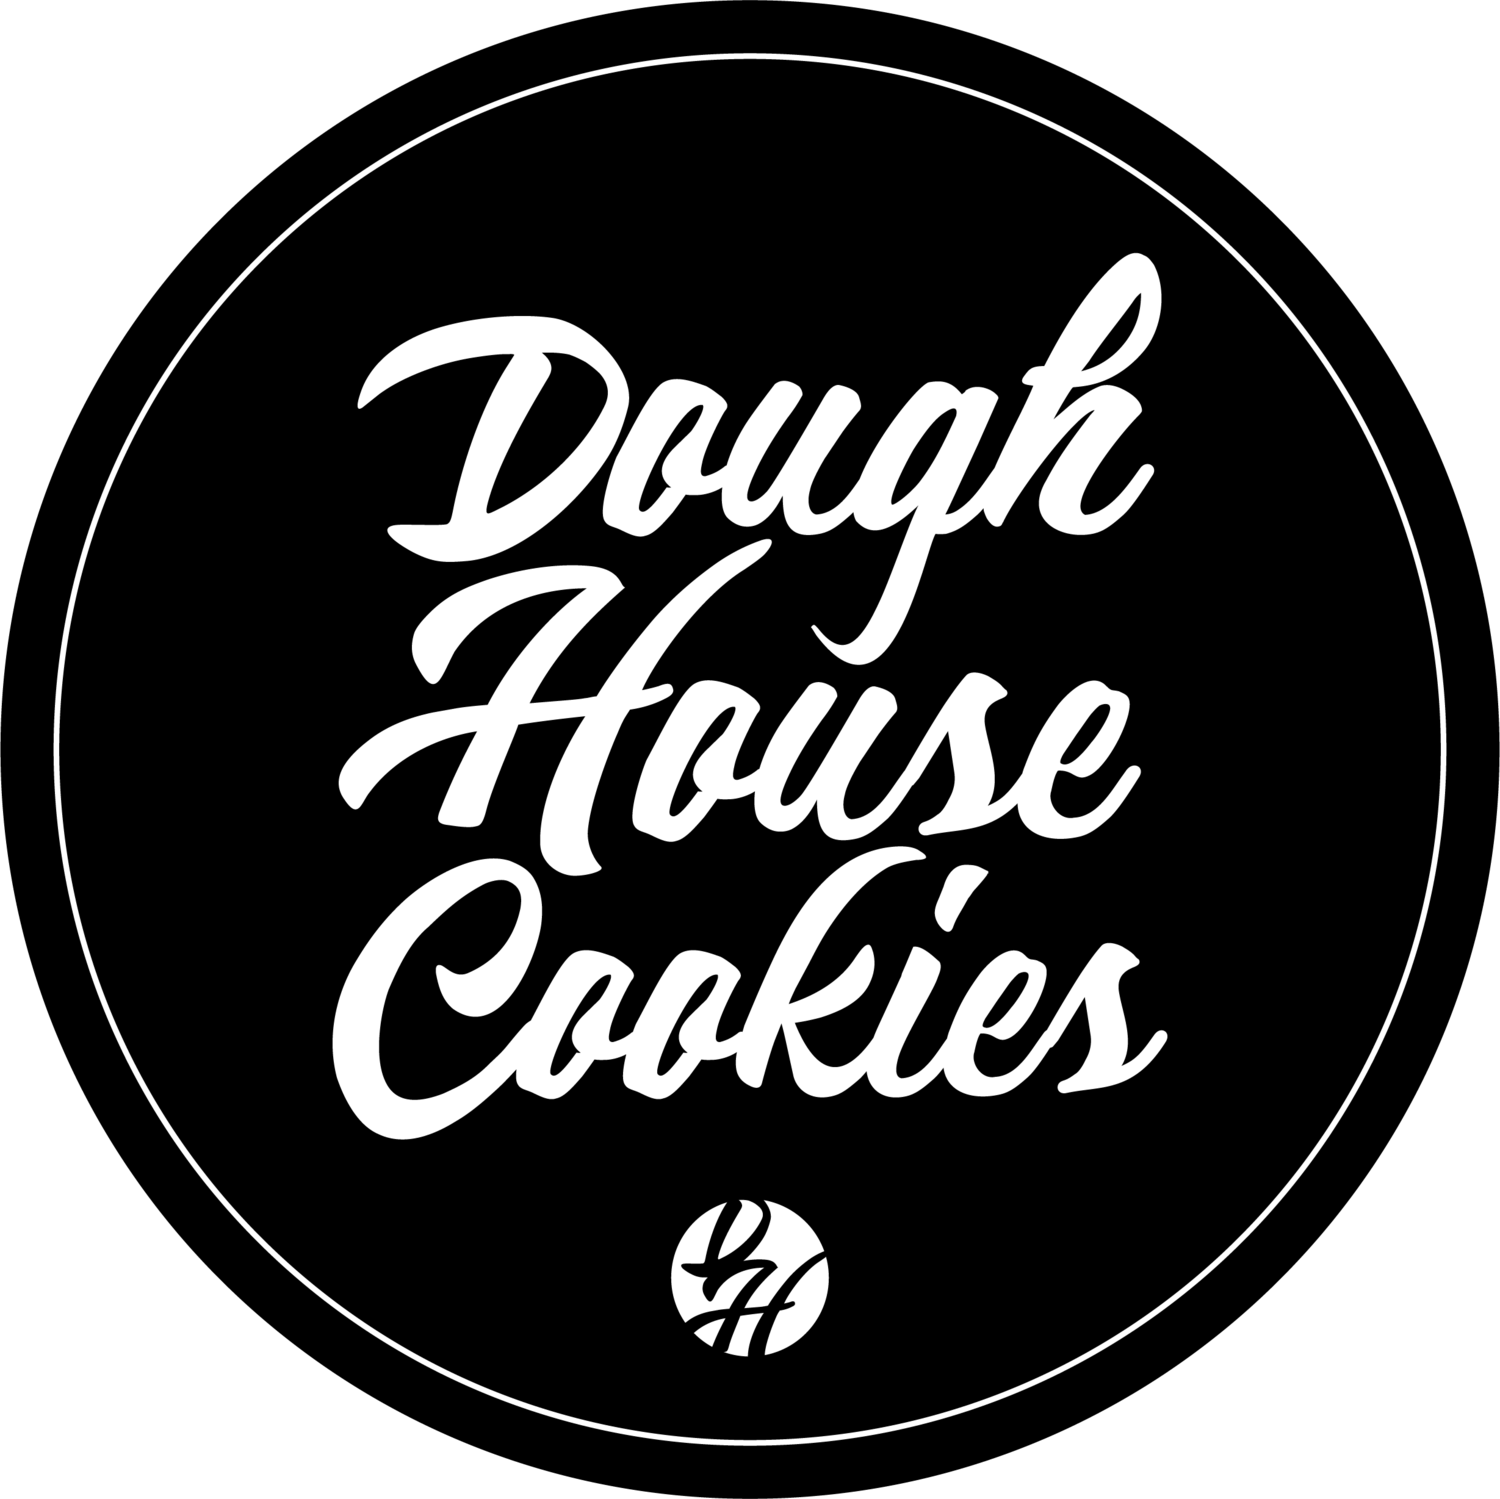 Dough House Cookies